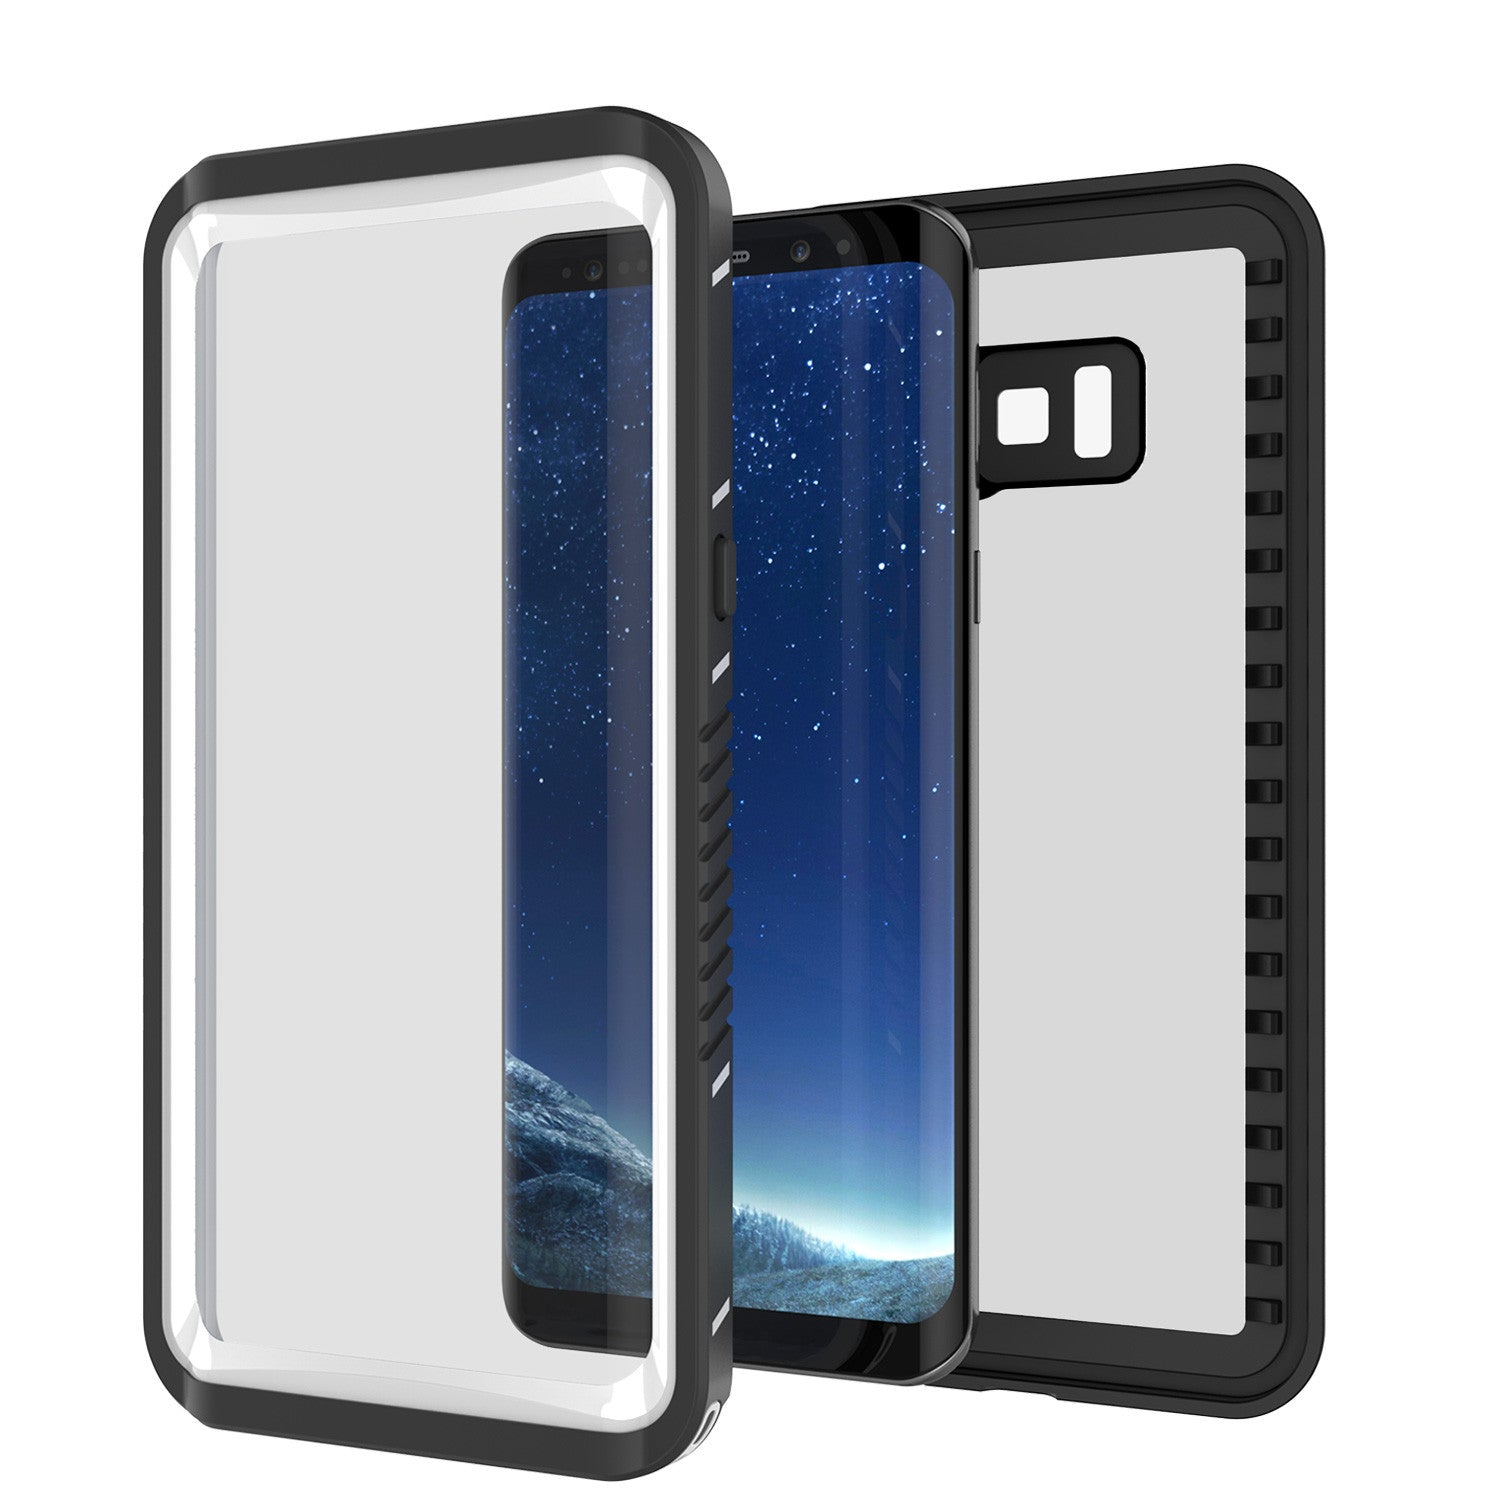 Galaxy S8 PLUS Waterproof Case, Punkcase [Extreme Series] [Slim Fit] [IP68 Certified] [Shockproof] [Snowproof] [Dirproof] Armor Cover [White]